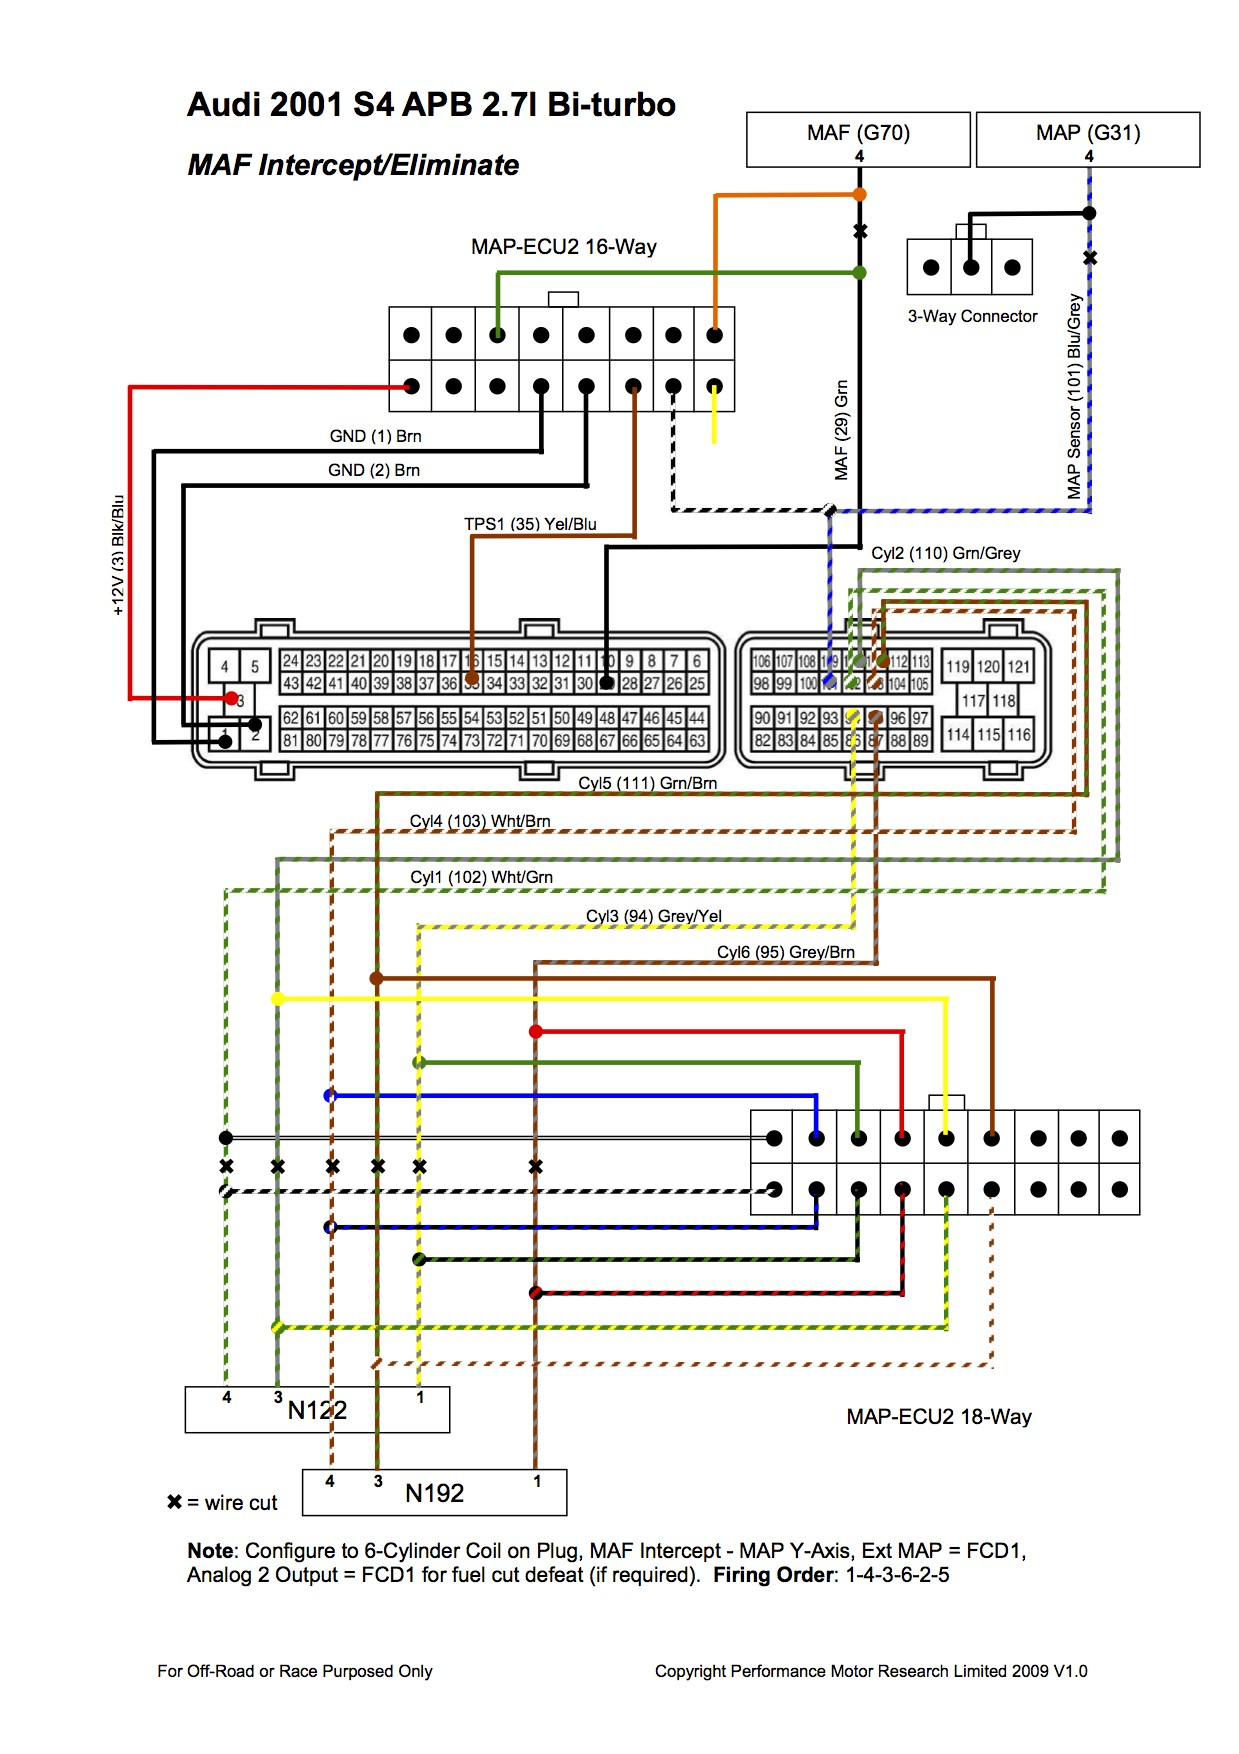 Toyota Hilux Wiring Diagram 1998 | Wiring Library - Hilux Trailer Wiring Diagram